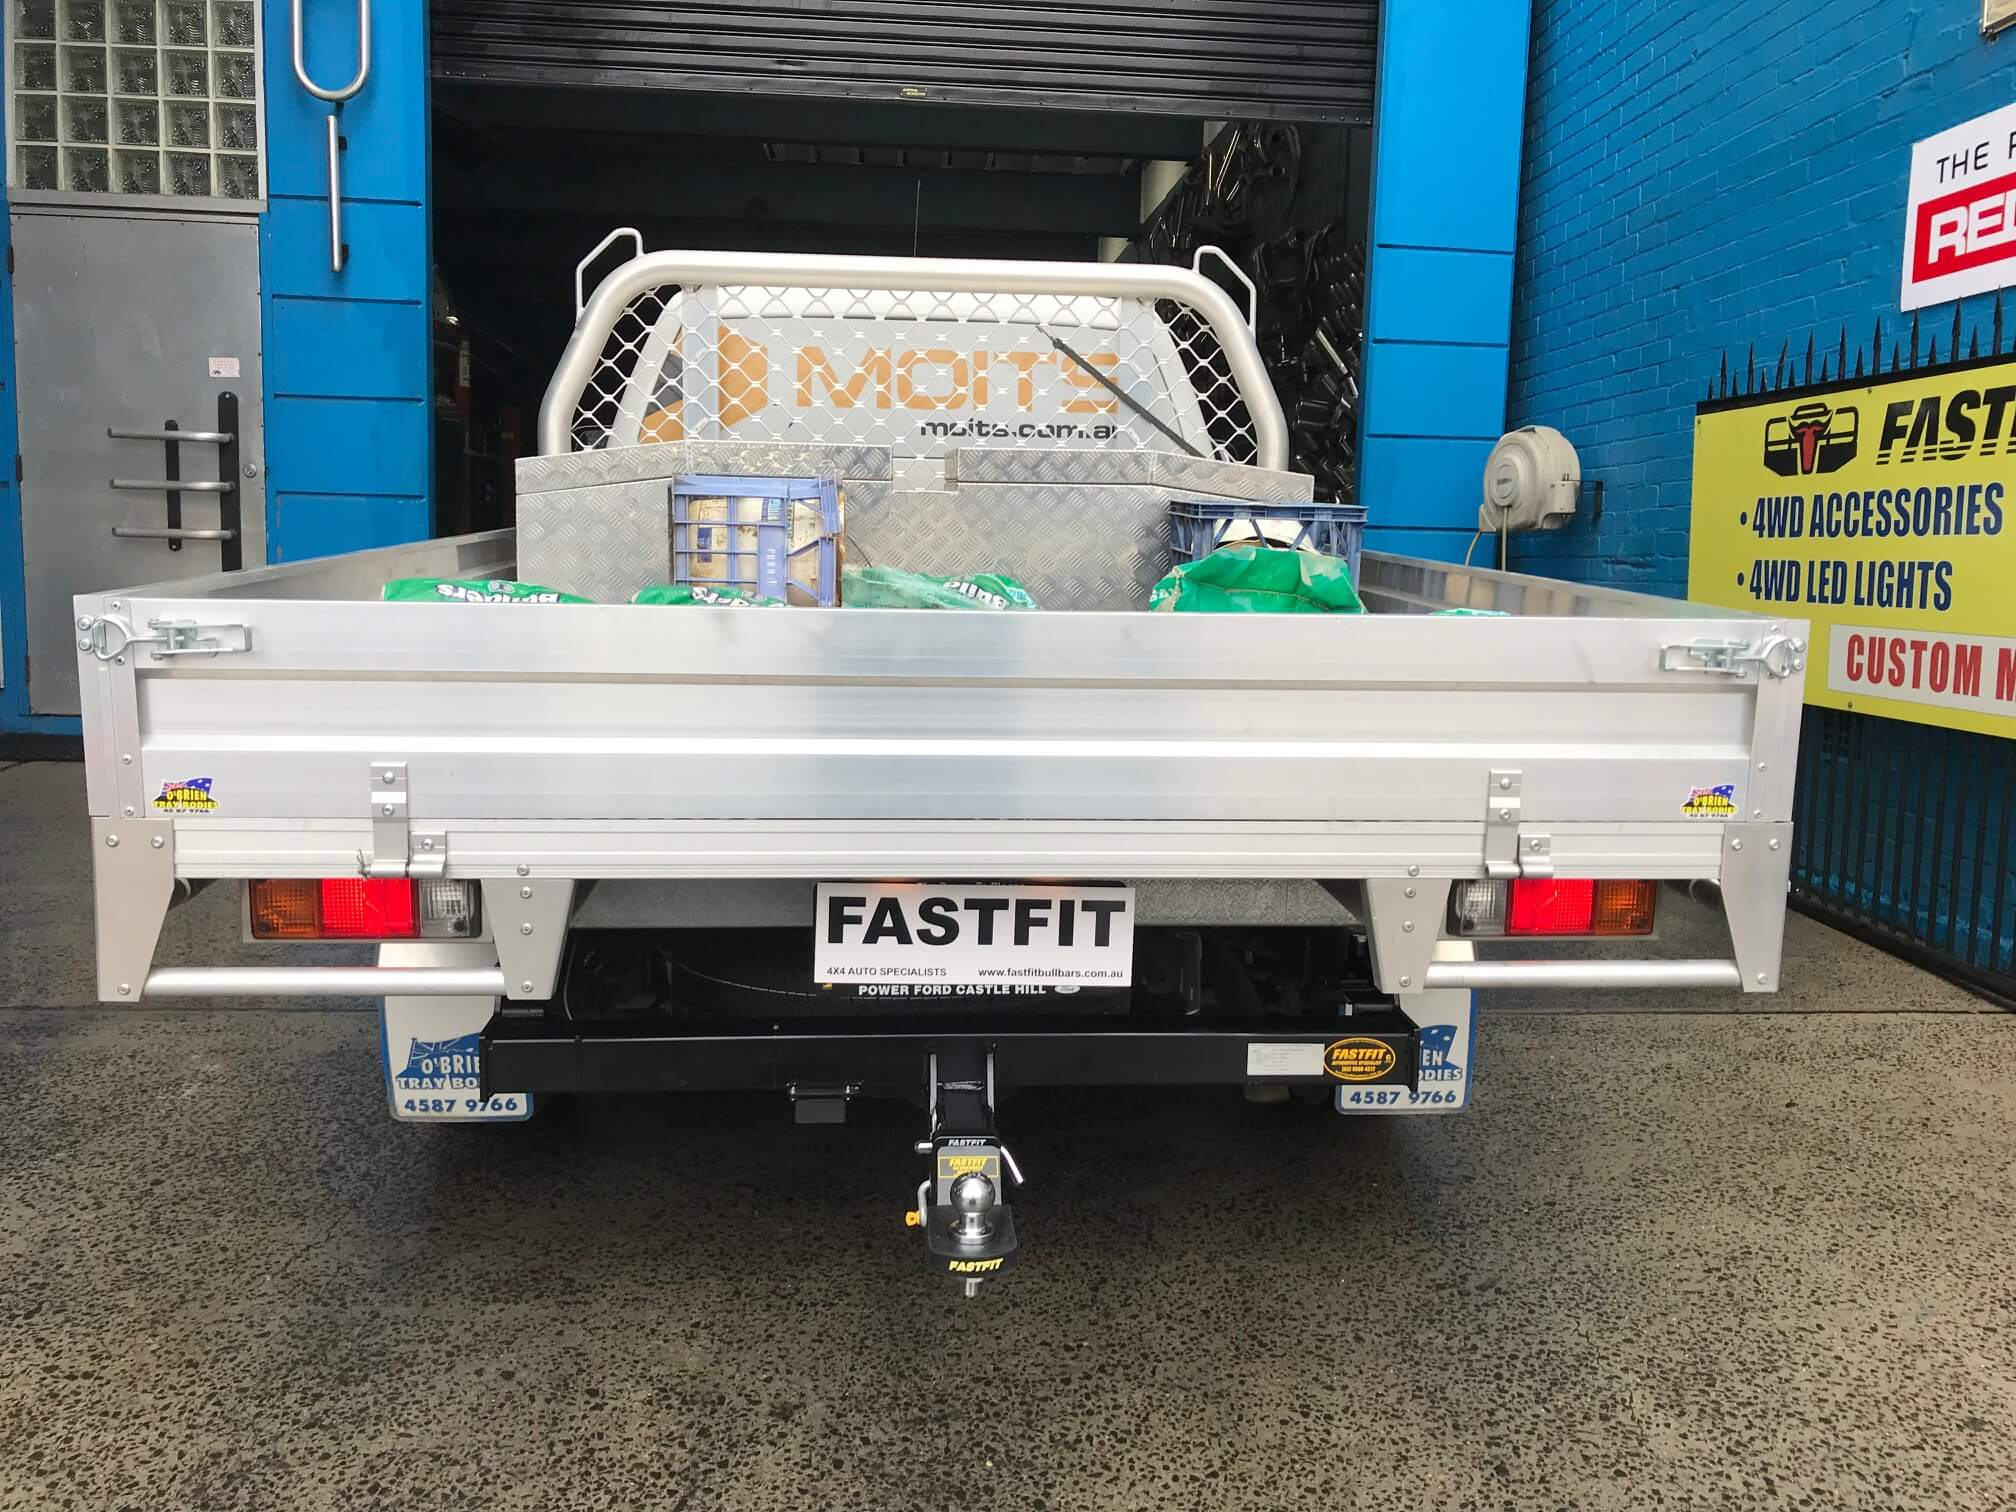 Fastfit Towbar To Suit Ford Ranger Ute 8 15 On Fastfit Bullbars And Towbars